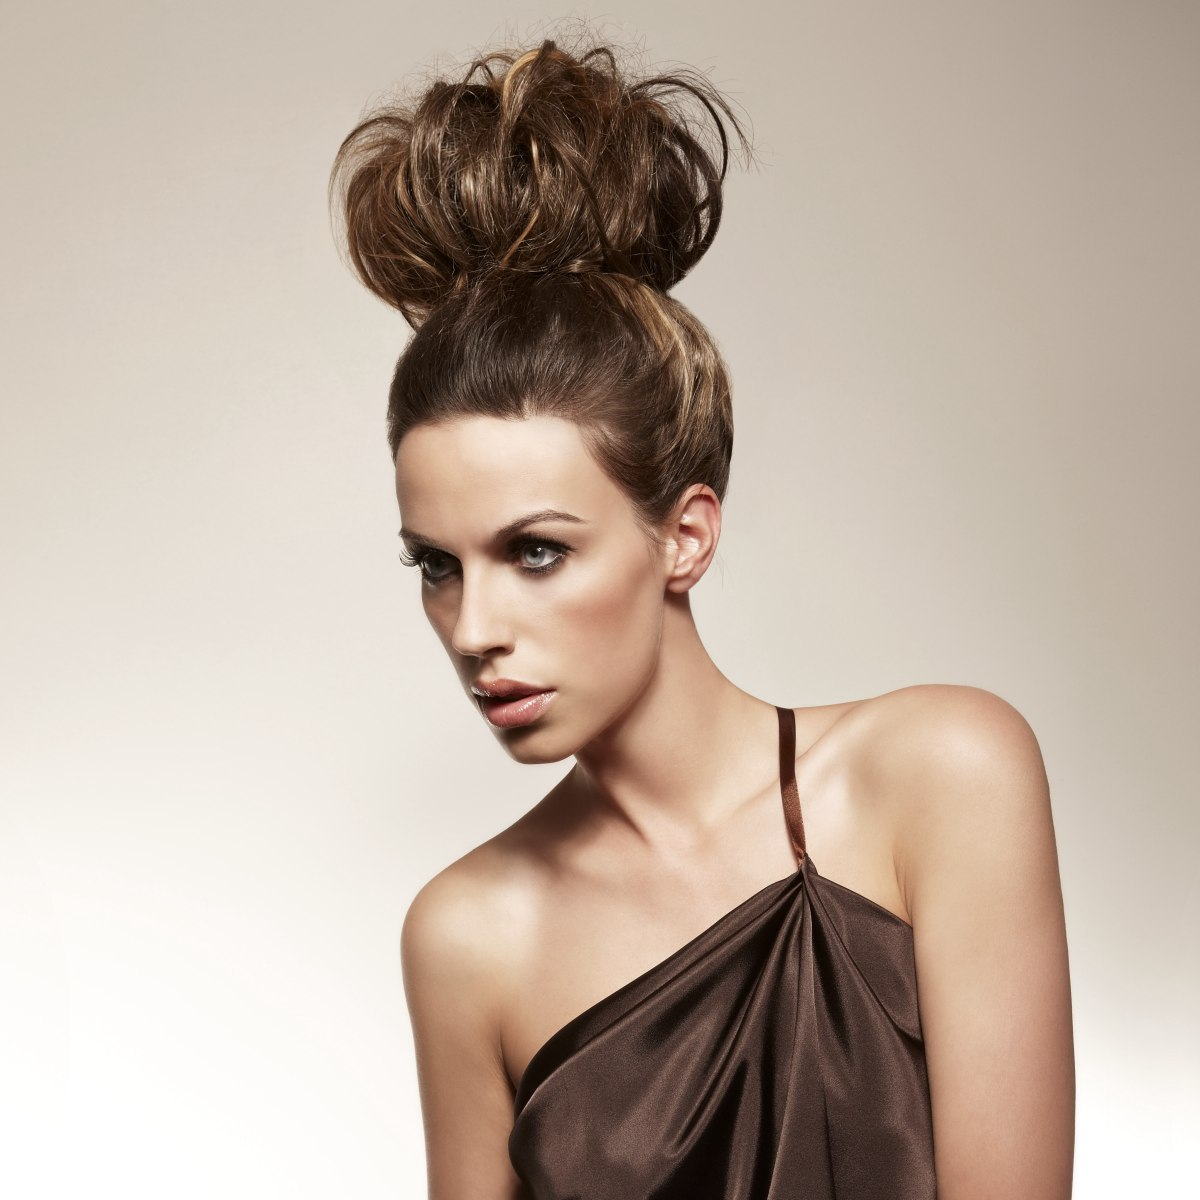 1950s Inspired Updo With Giant Pouf On Top Of The Head